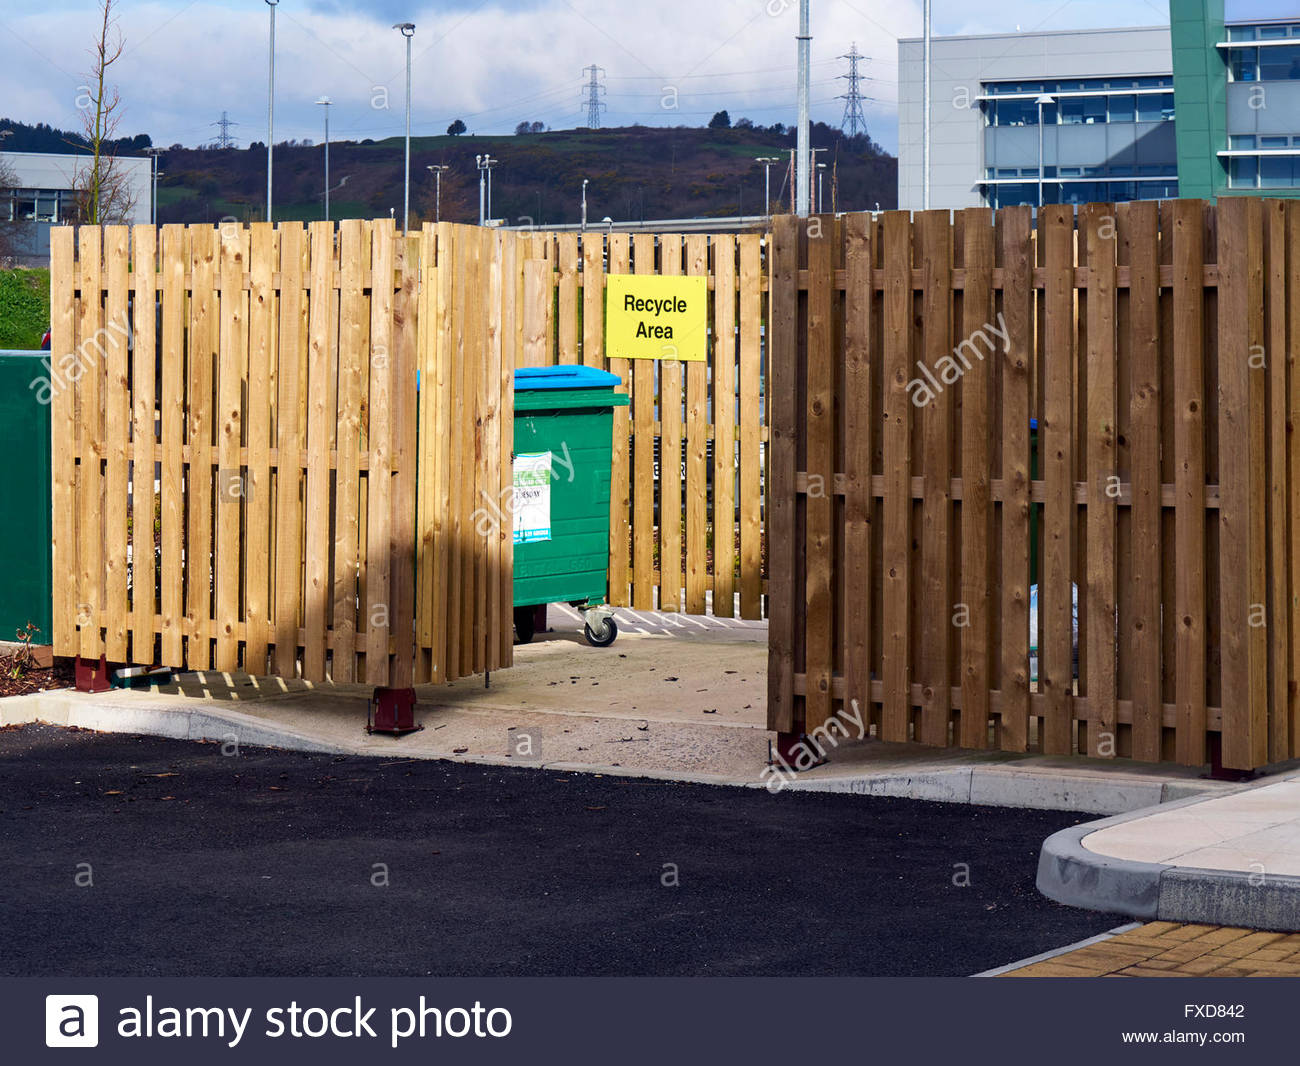 Wooden enclosure for storing recycling rubbish bins - Stock Image